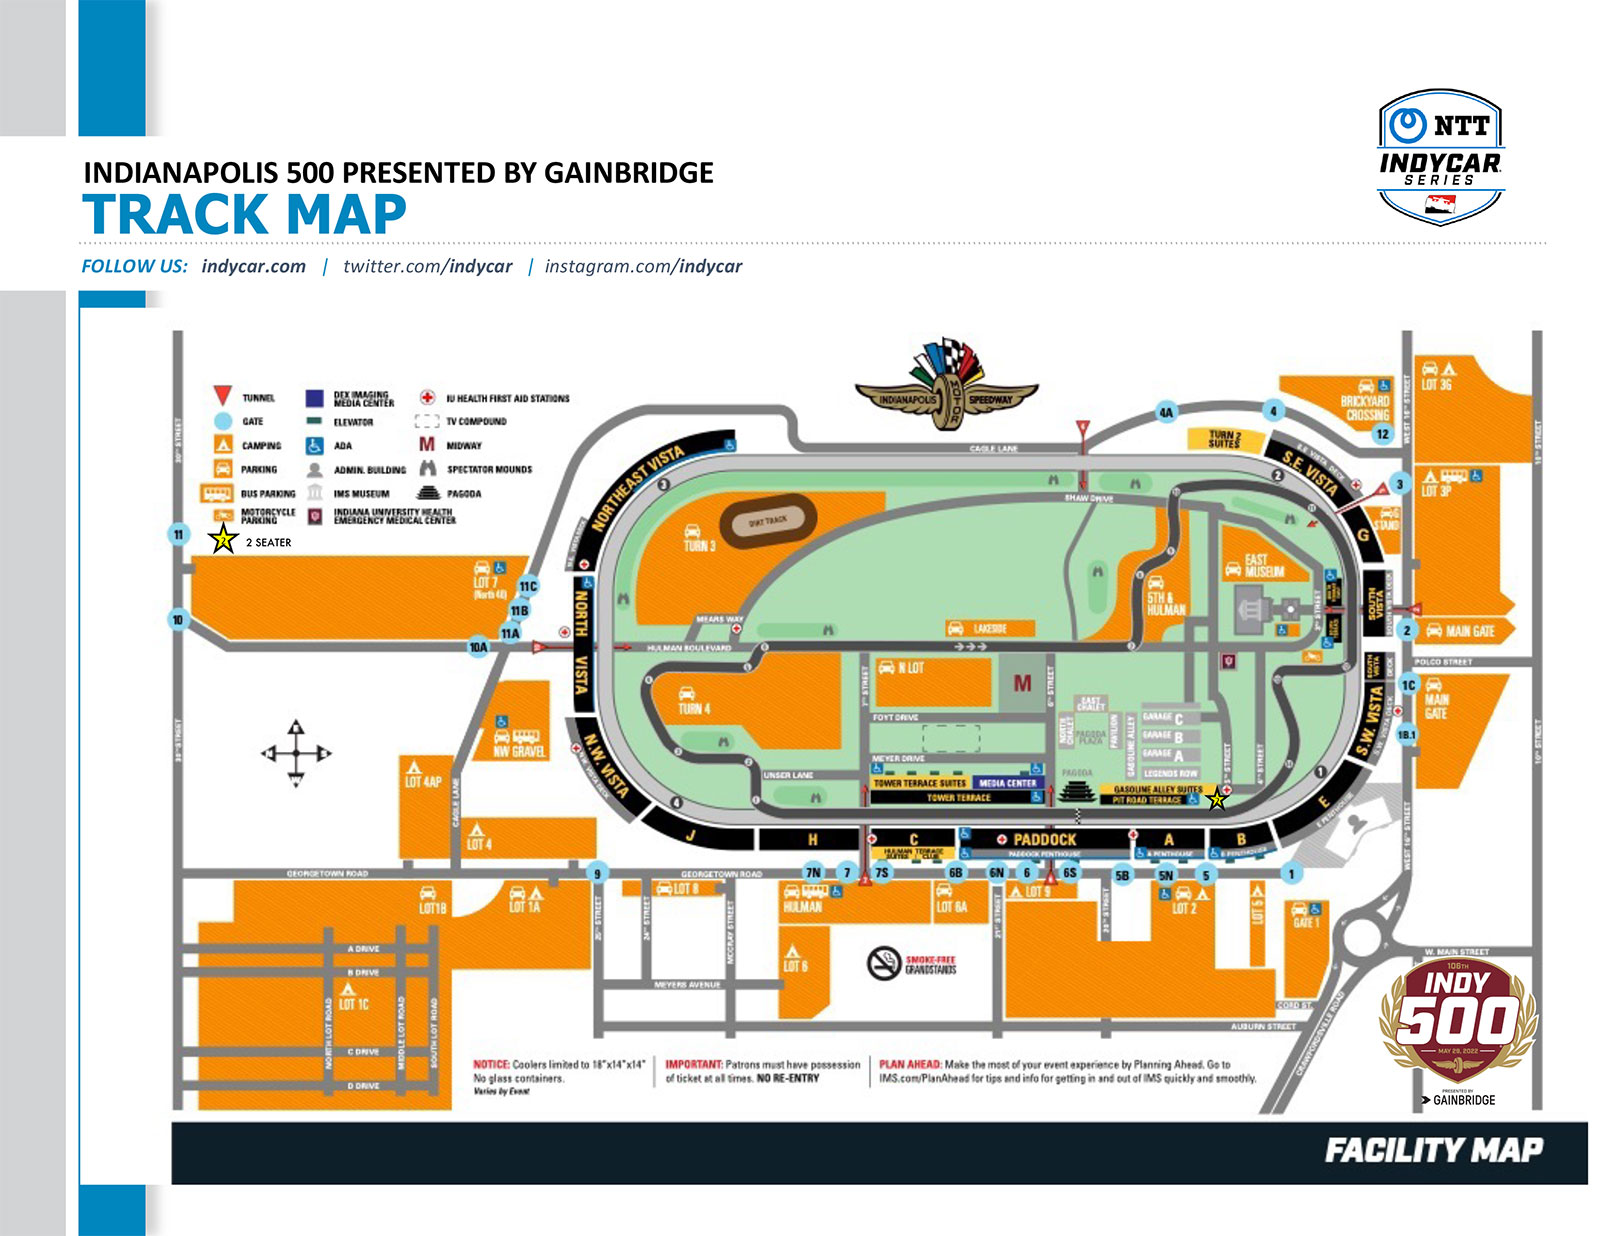 Indy 500 Track map – JP Montoya Official Site Map Indy on abbey map, dragon map, mac map, india map, dixie map, lincoln map, icon map, indianapolis map, sebring map, leon map, war map, parker map, iris map, dover map, dayton map, ruby map, international map, ice map, ford map, indiana map,